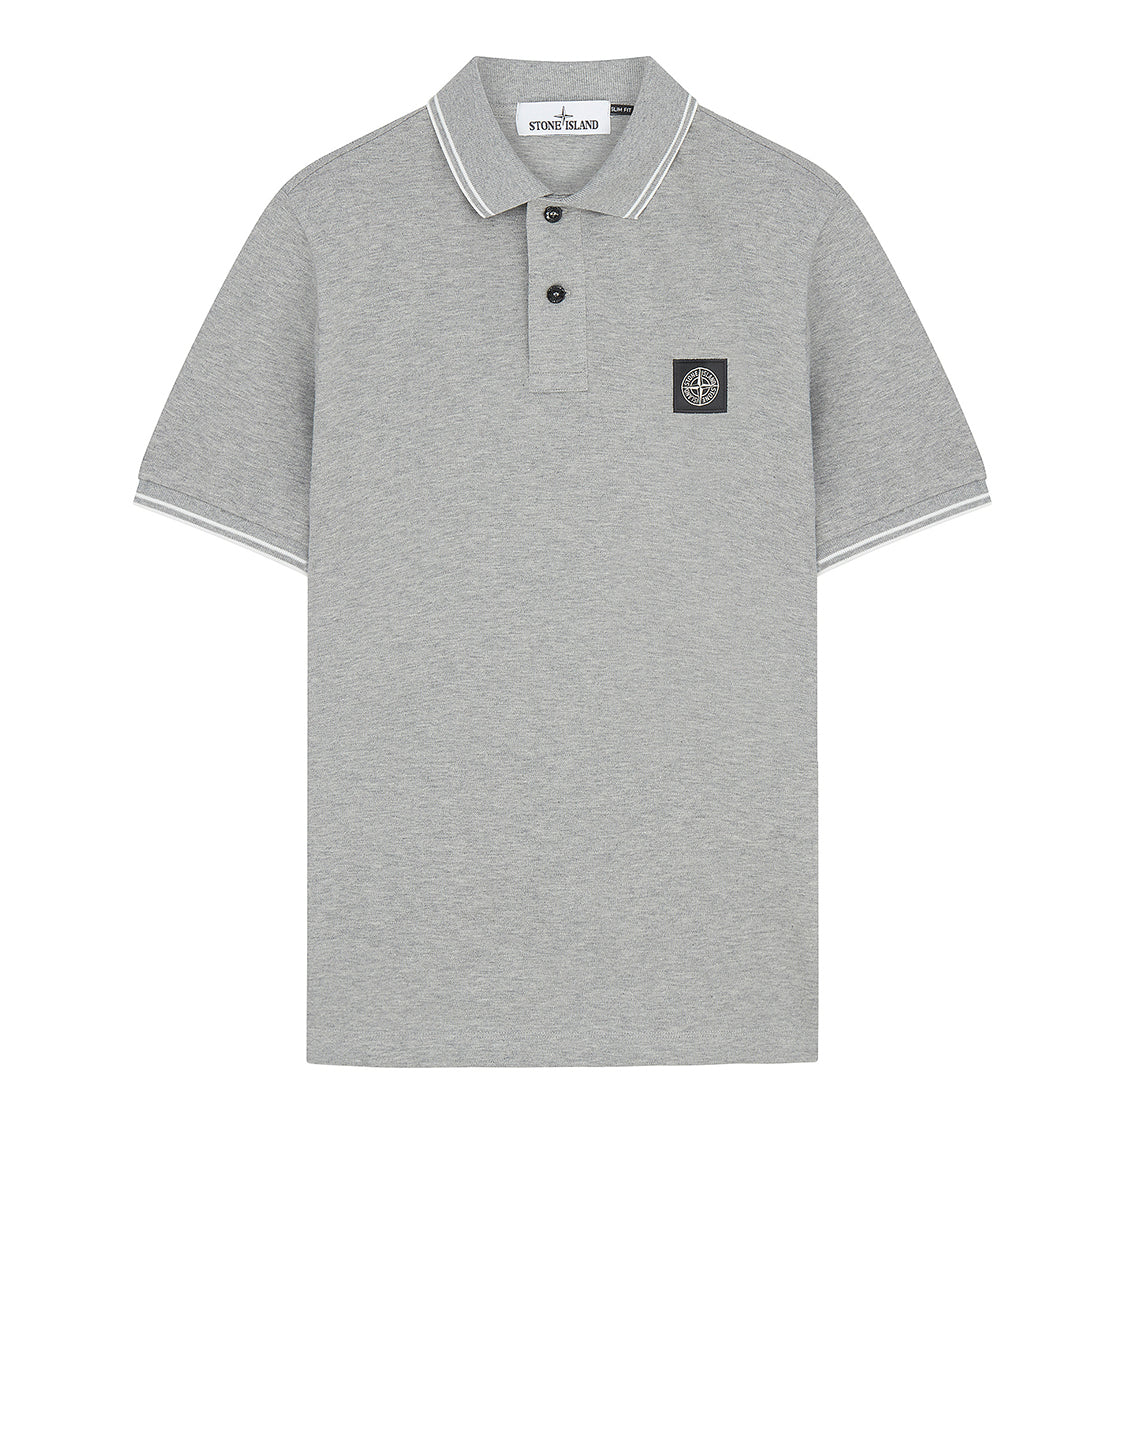 22S18 Polo Shirt in Powder